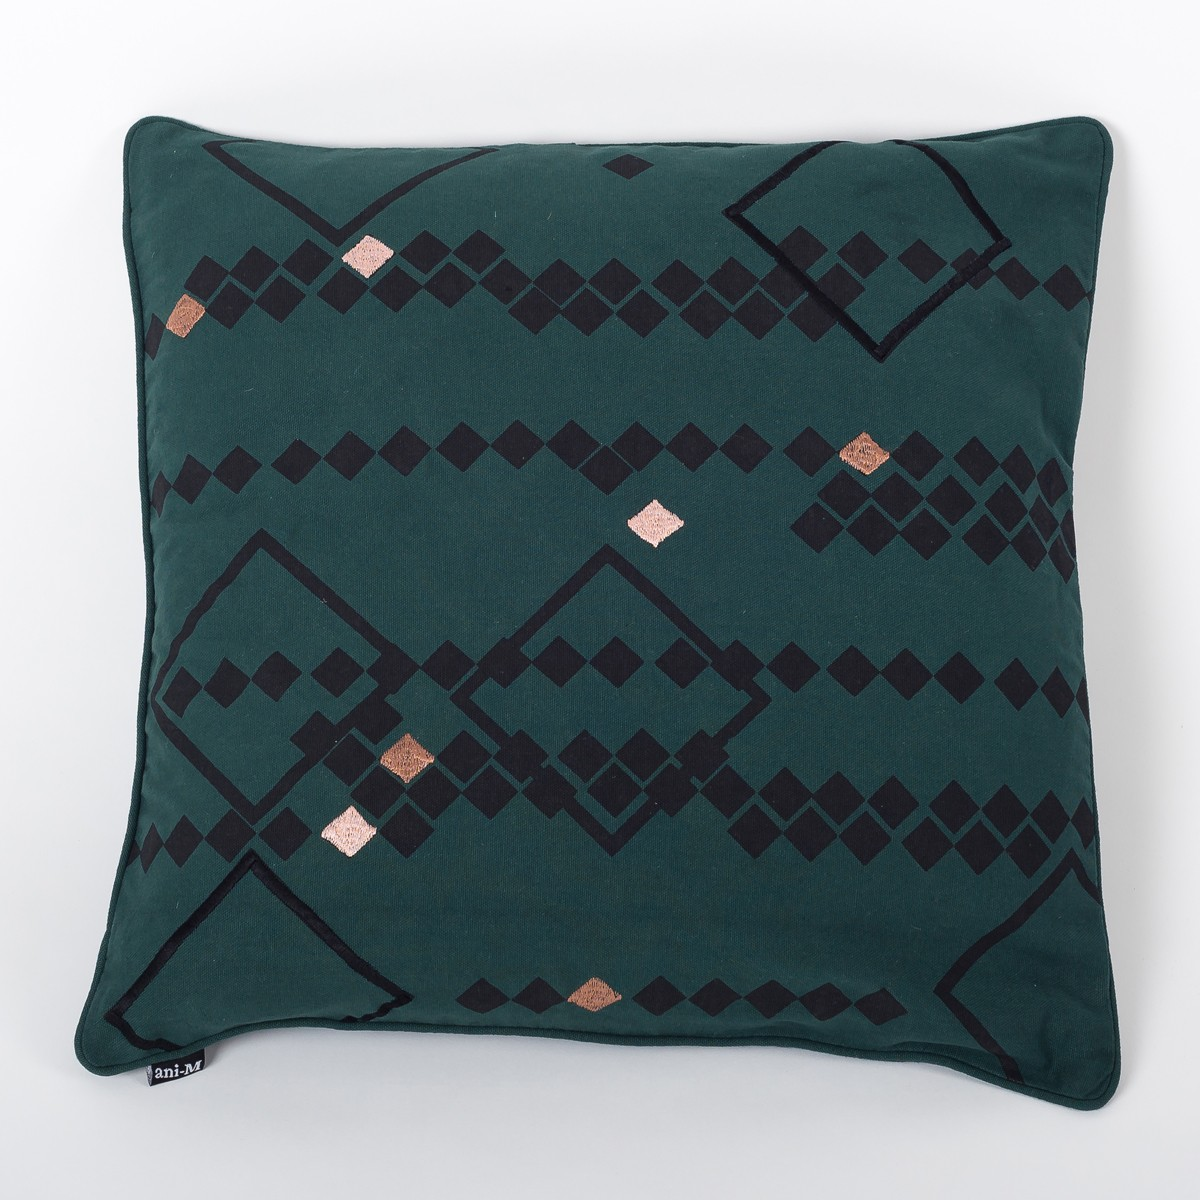 Rhombus Moss Green Cotton Cushion Cover with Thread Embroidery Front